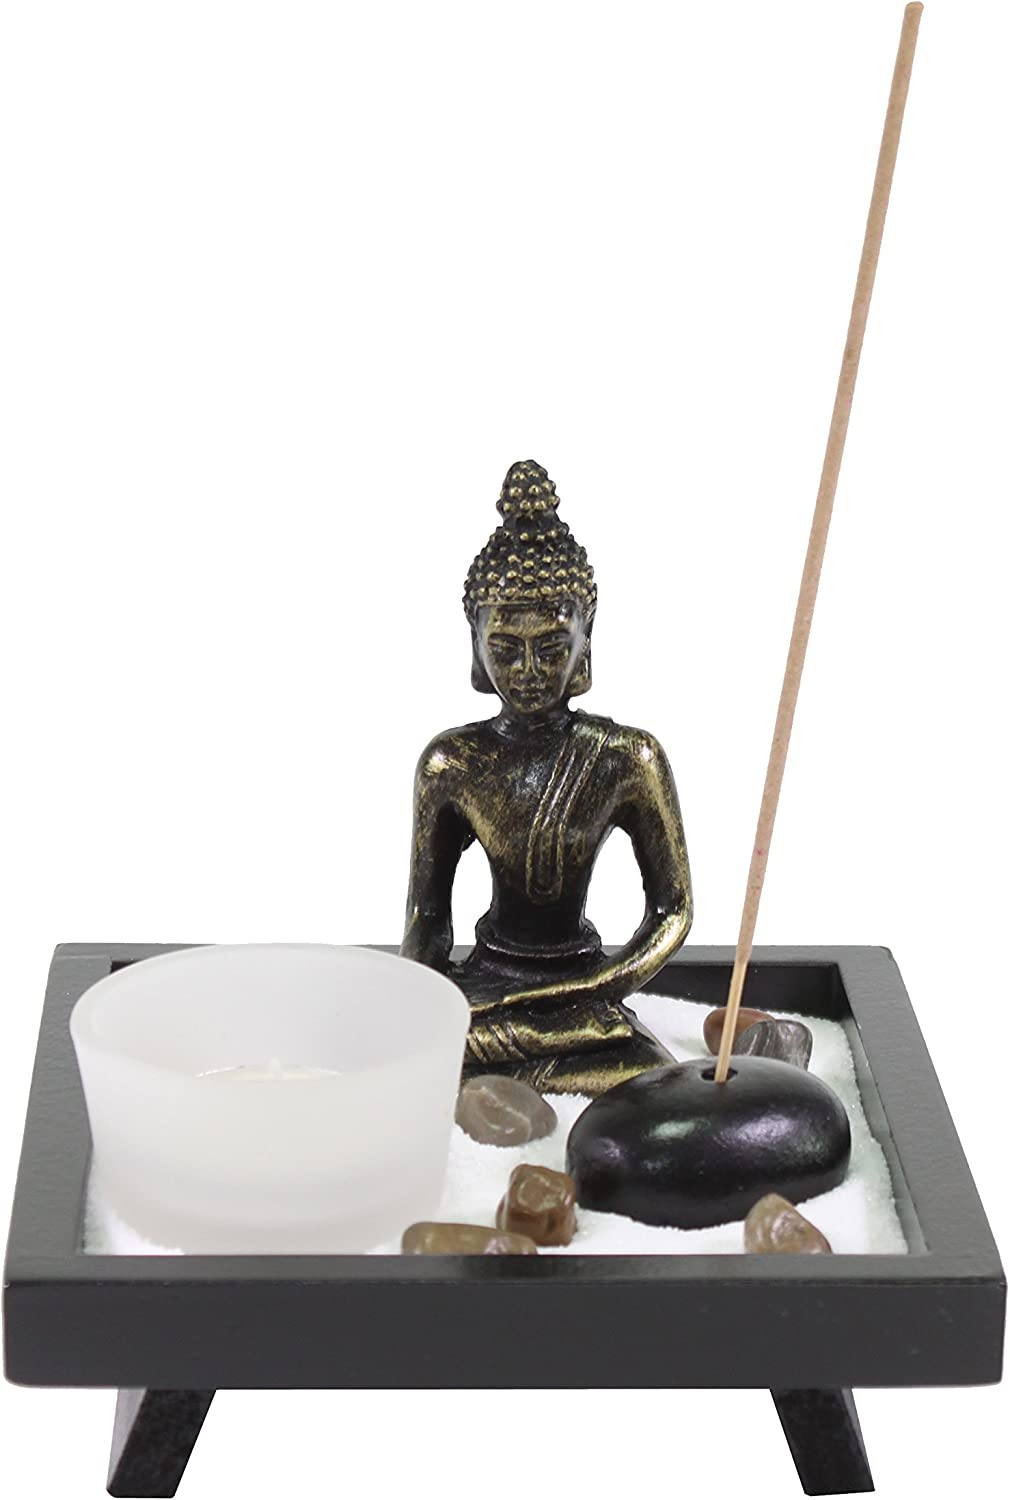 Tabletop Buddha Zen Garden with Sand Rock Candle Holder Incense Burner Gift & Home Decor